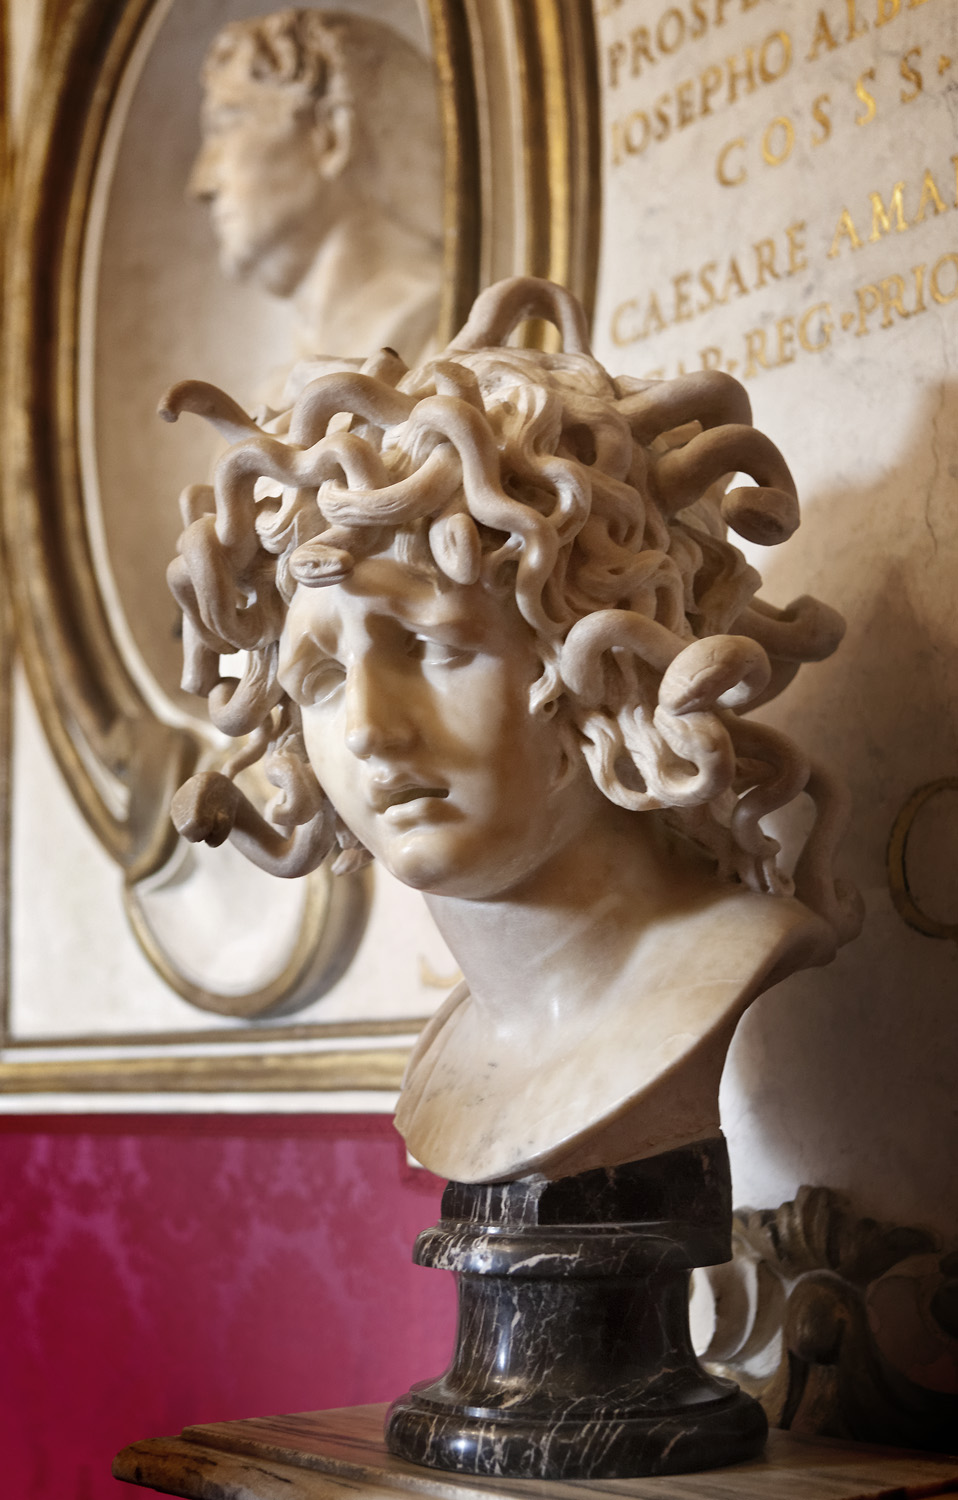 Bust of Medusa by Bernini, Musei Capitolini, Rome